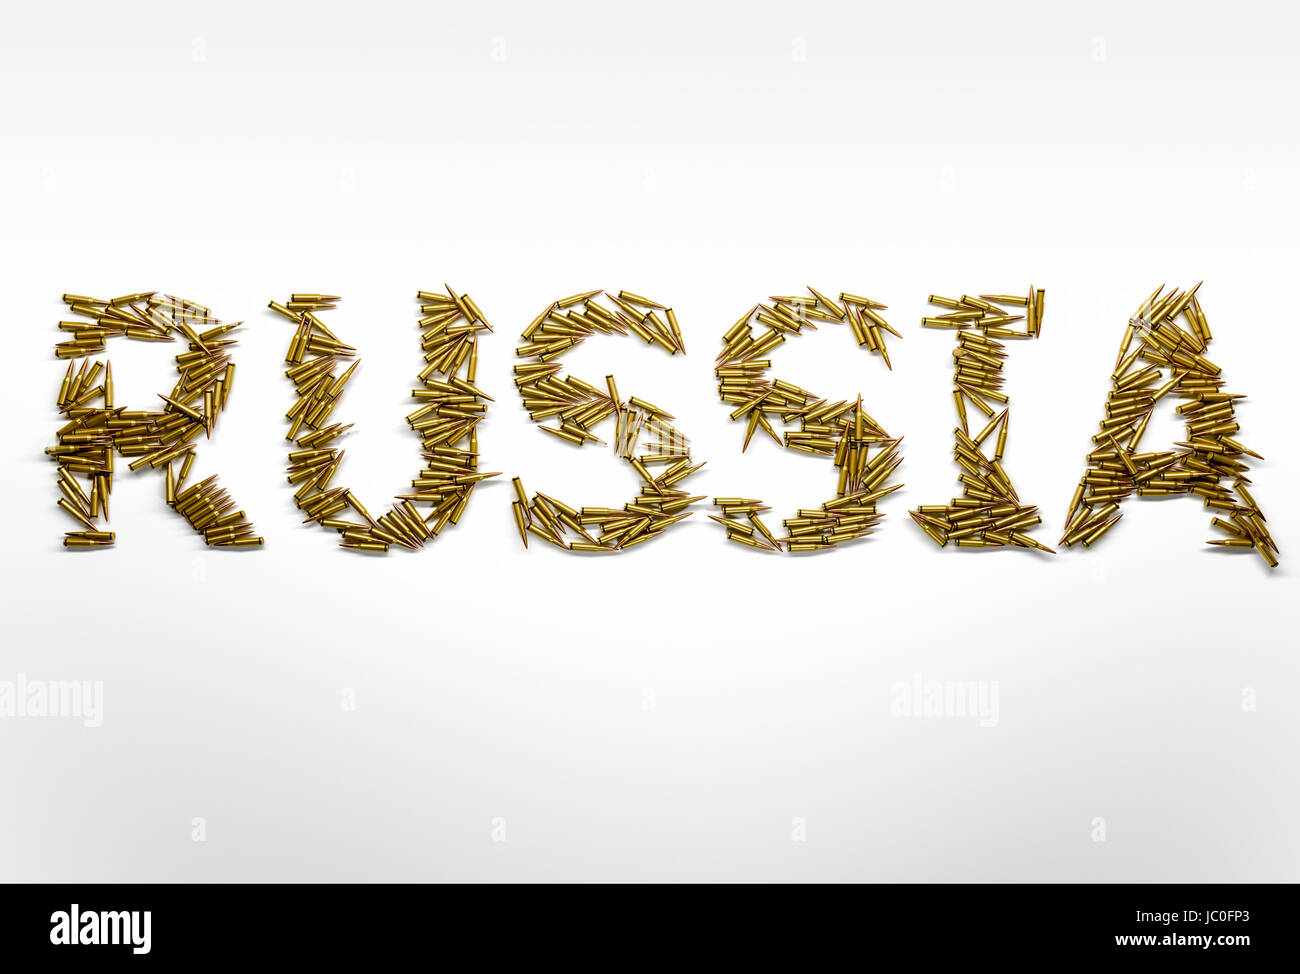 Concept of Russia in military conflicts  Word Russia typed